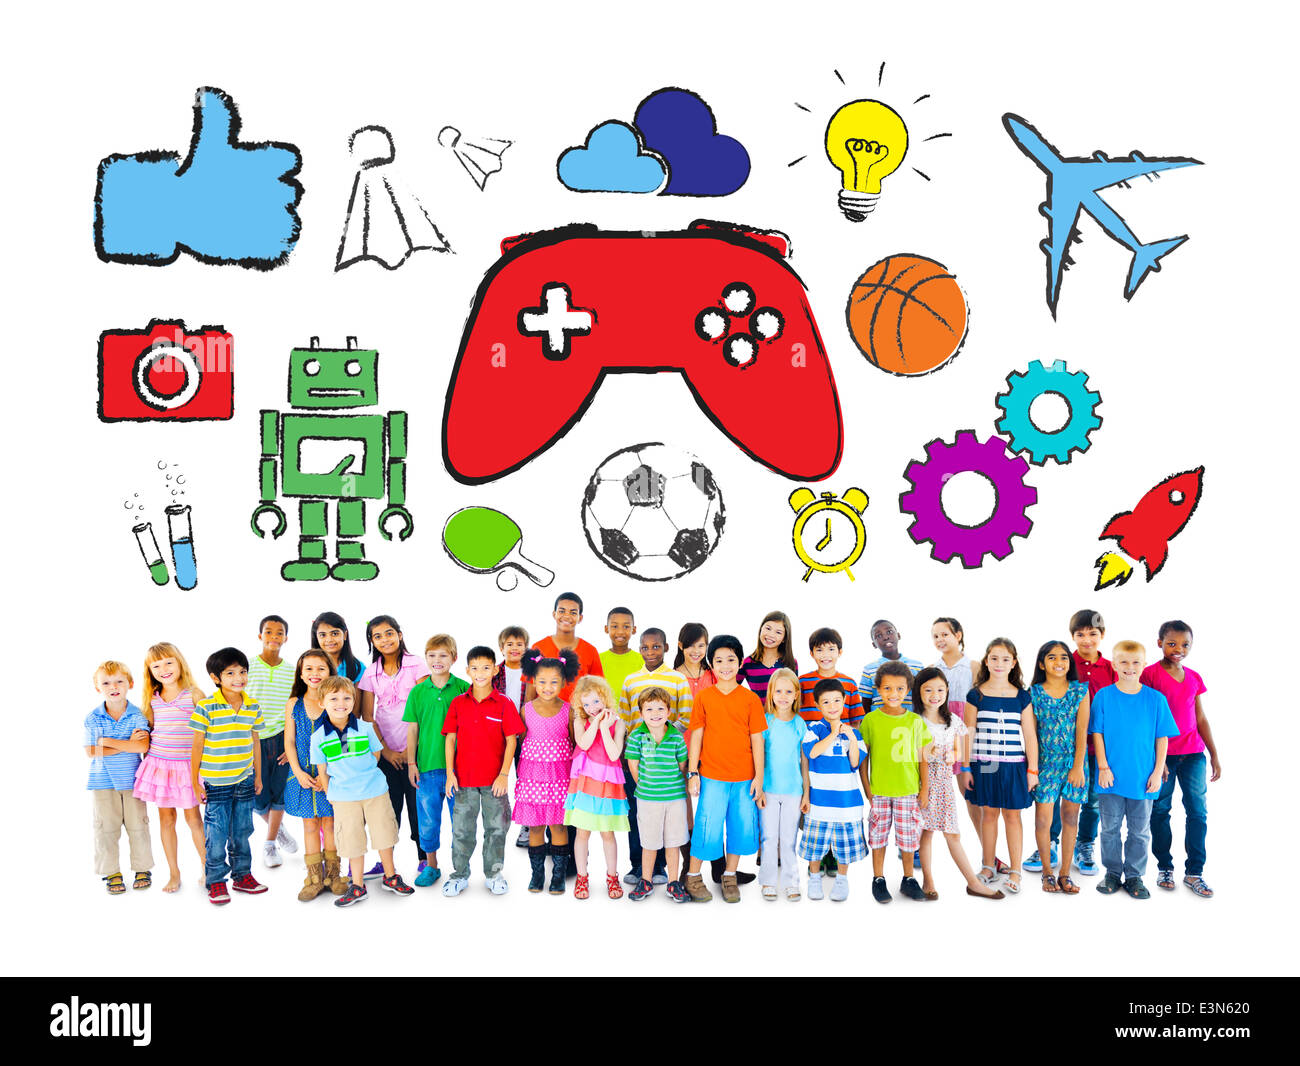 Diverse Group of Children with Hobbies - Stock Image